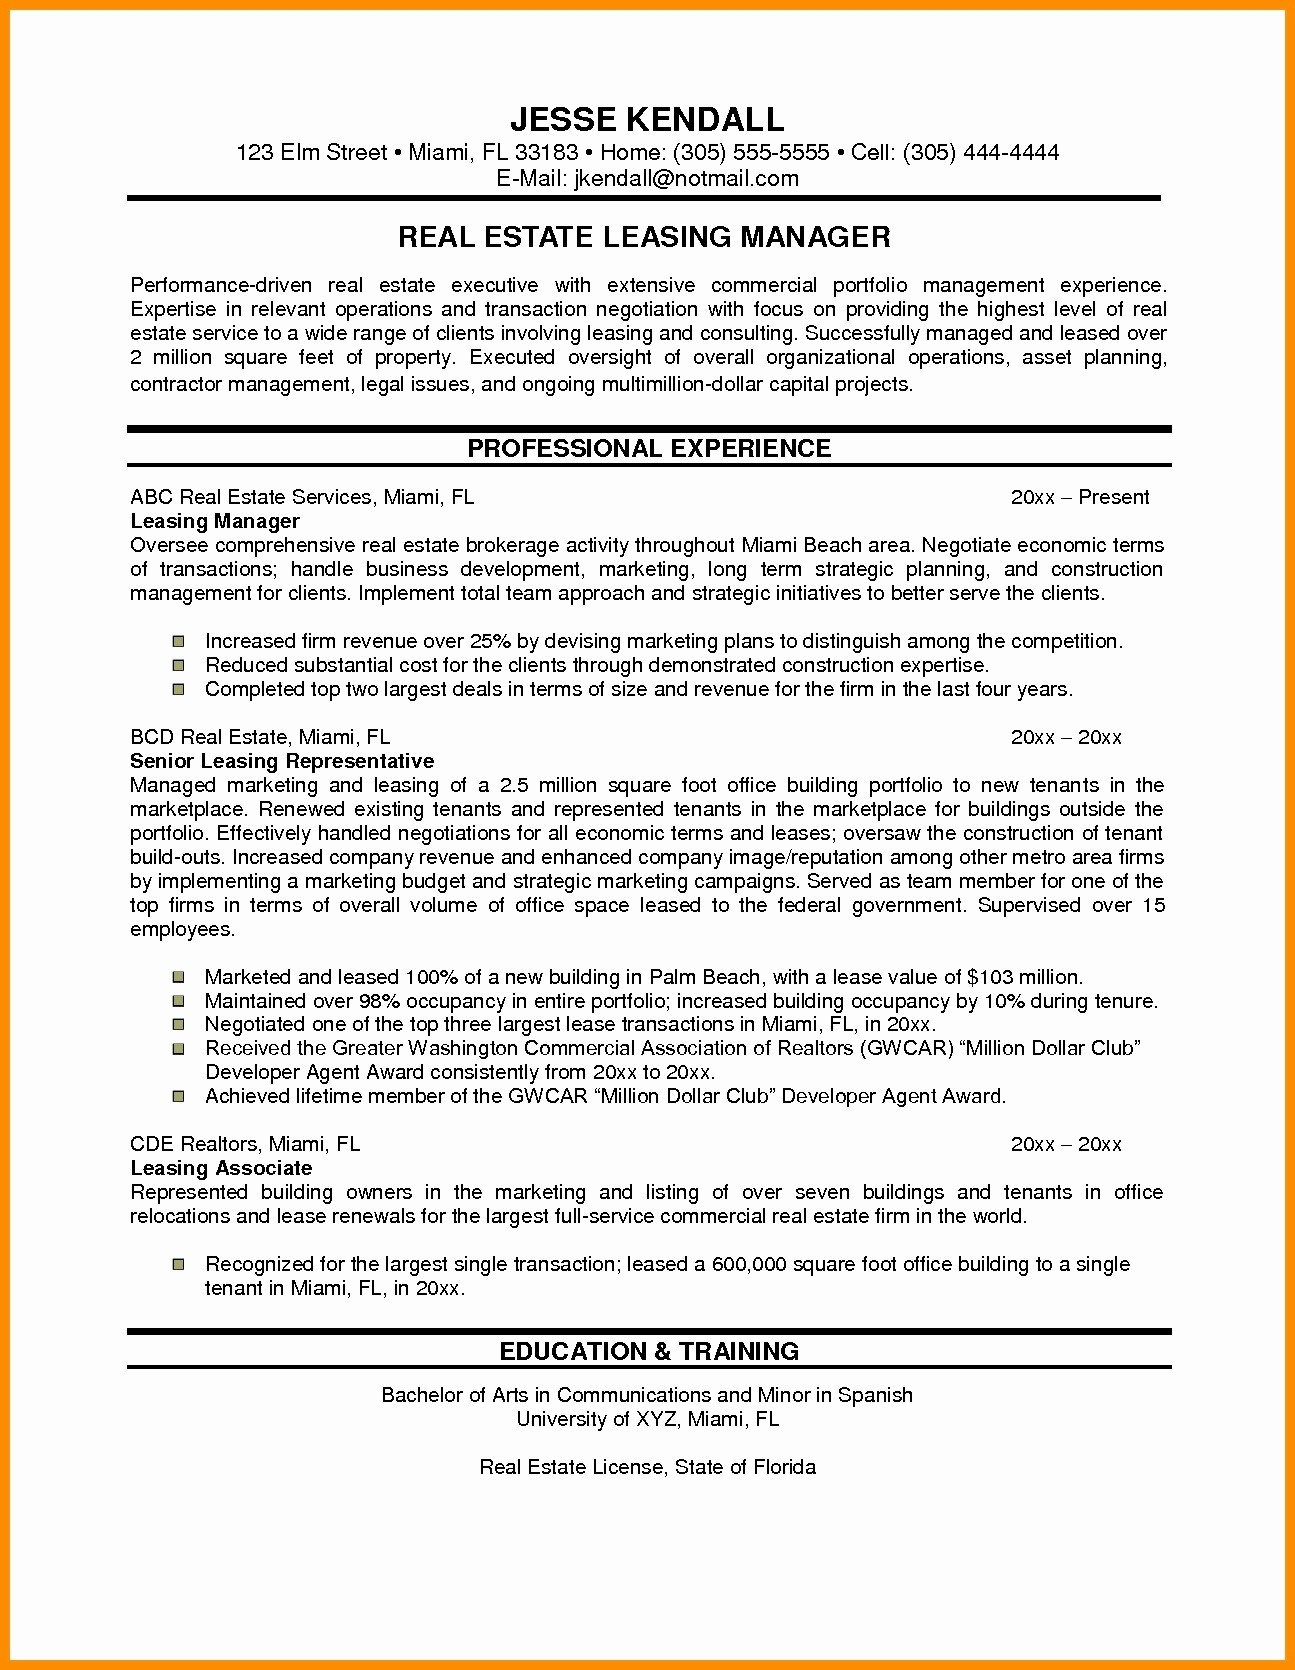 Law Firm Resume - Real Estate attorney Resume New Sample Resume for Property Manager